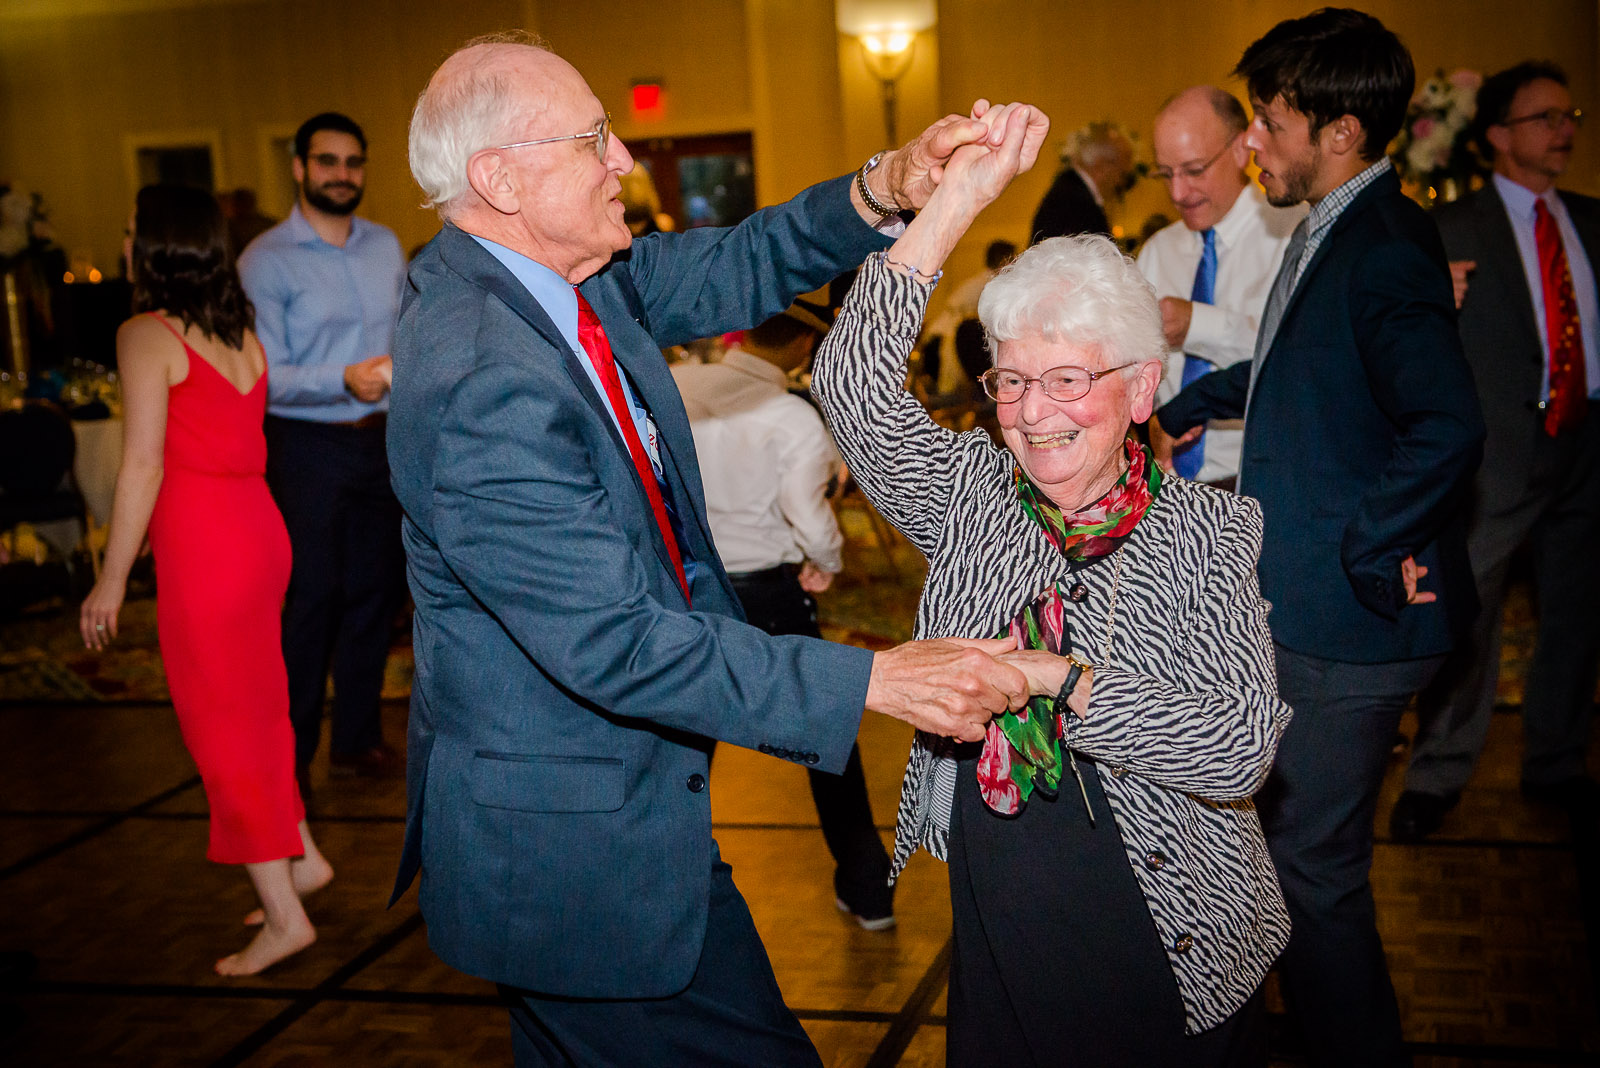 Eric_and_Christy_Photography_Blog_2018_Wed_moments-29